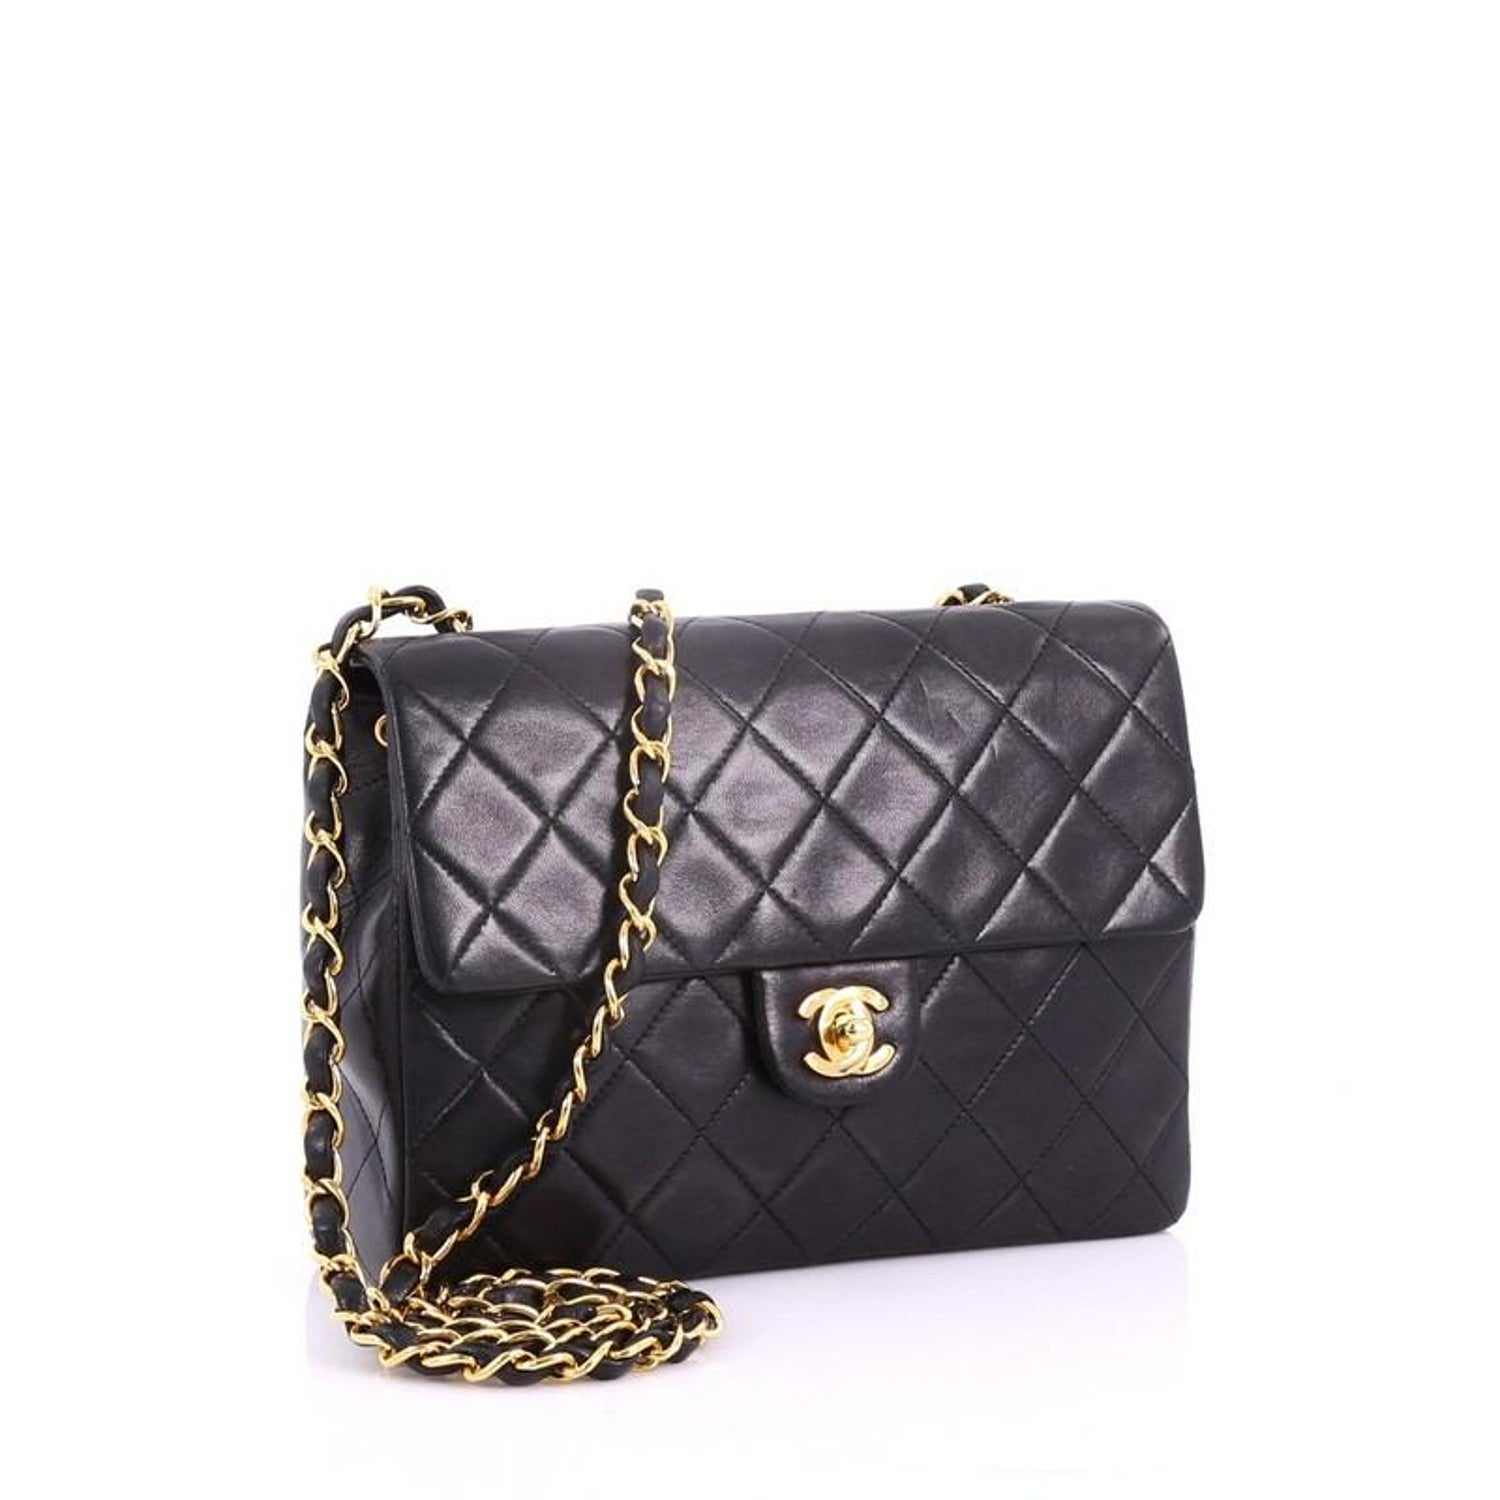 d1580a404fb0 Chanel Vintage Square Classic Flap Bag Quilted Lambskin Small at 1stdibs